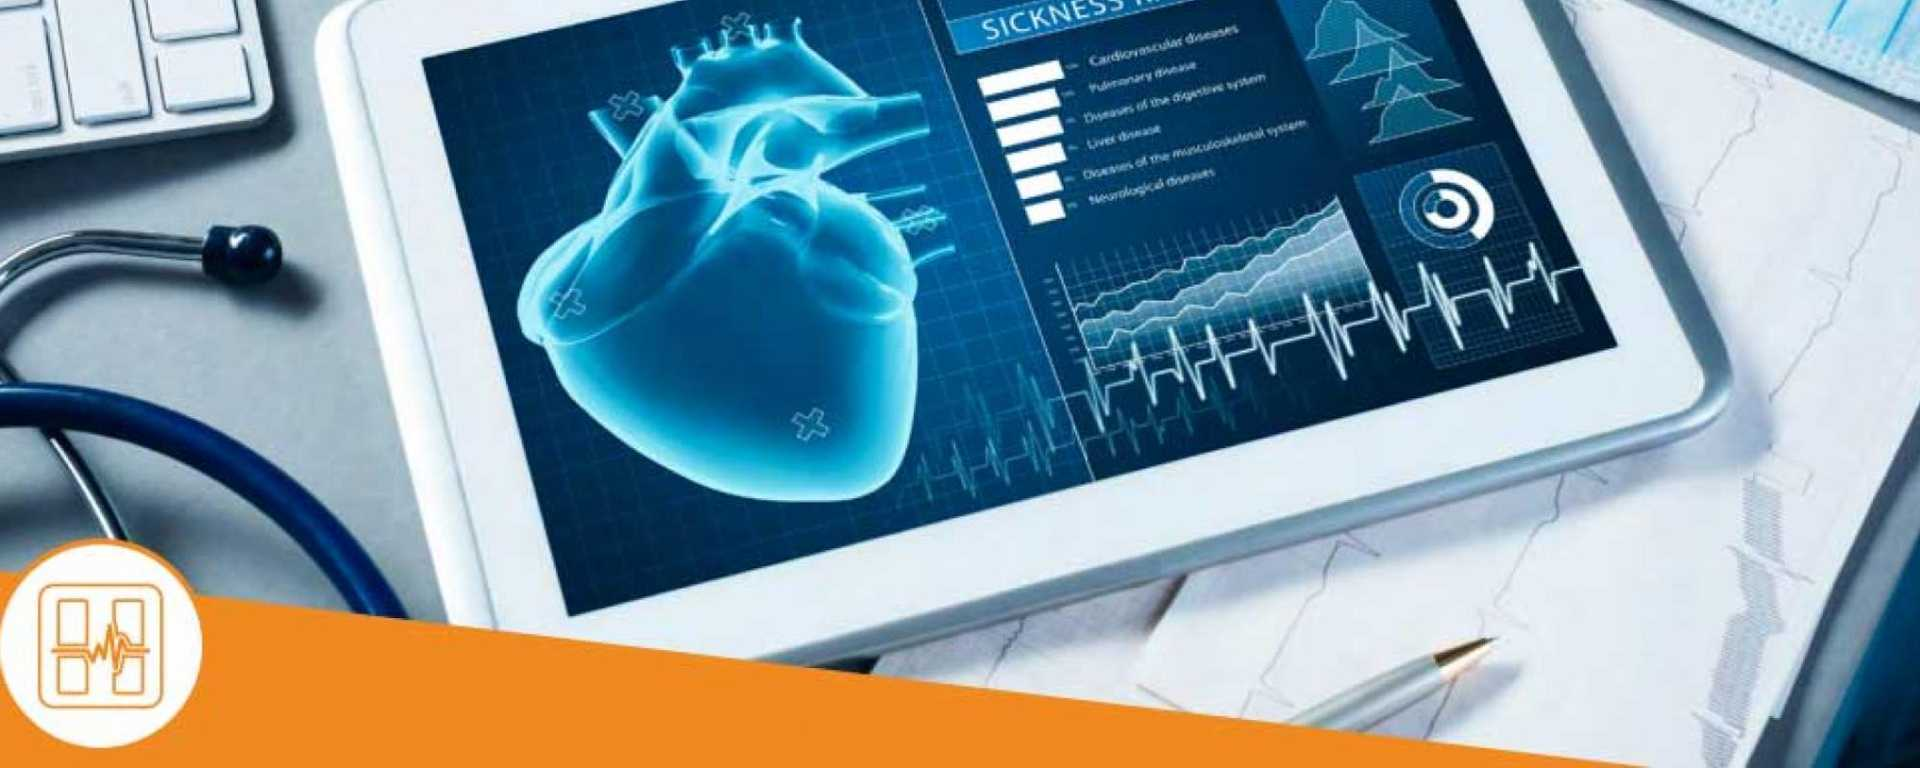 Accruent - Resources - White Papers - Healthcare Technology Trends & Best Practices - Hero